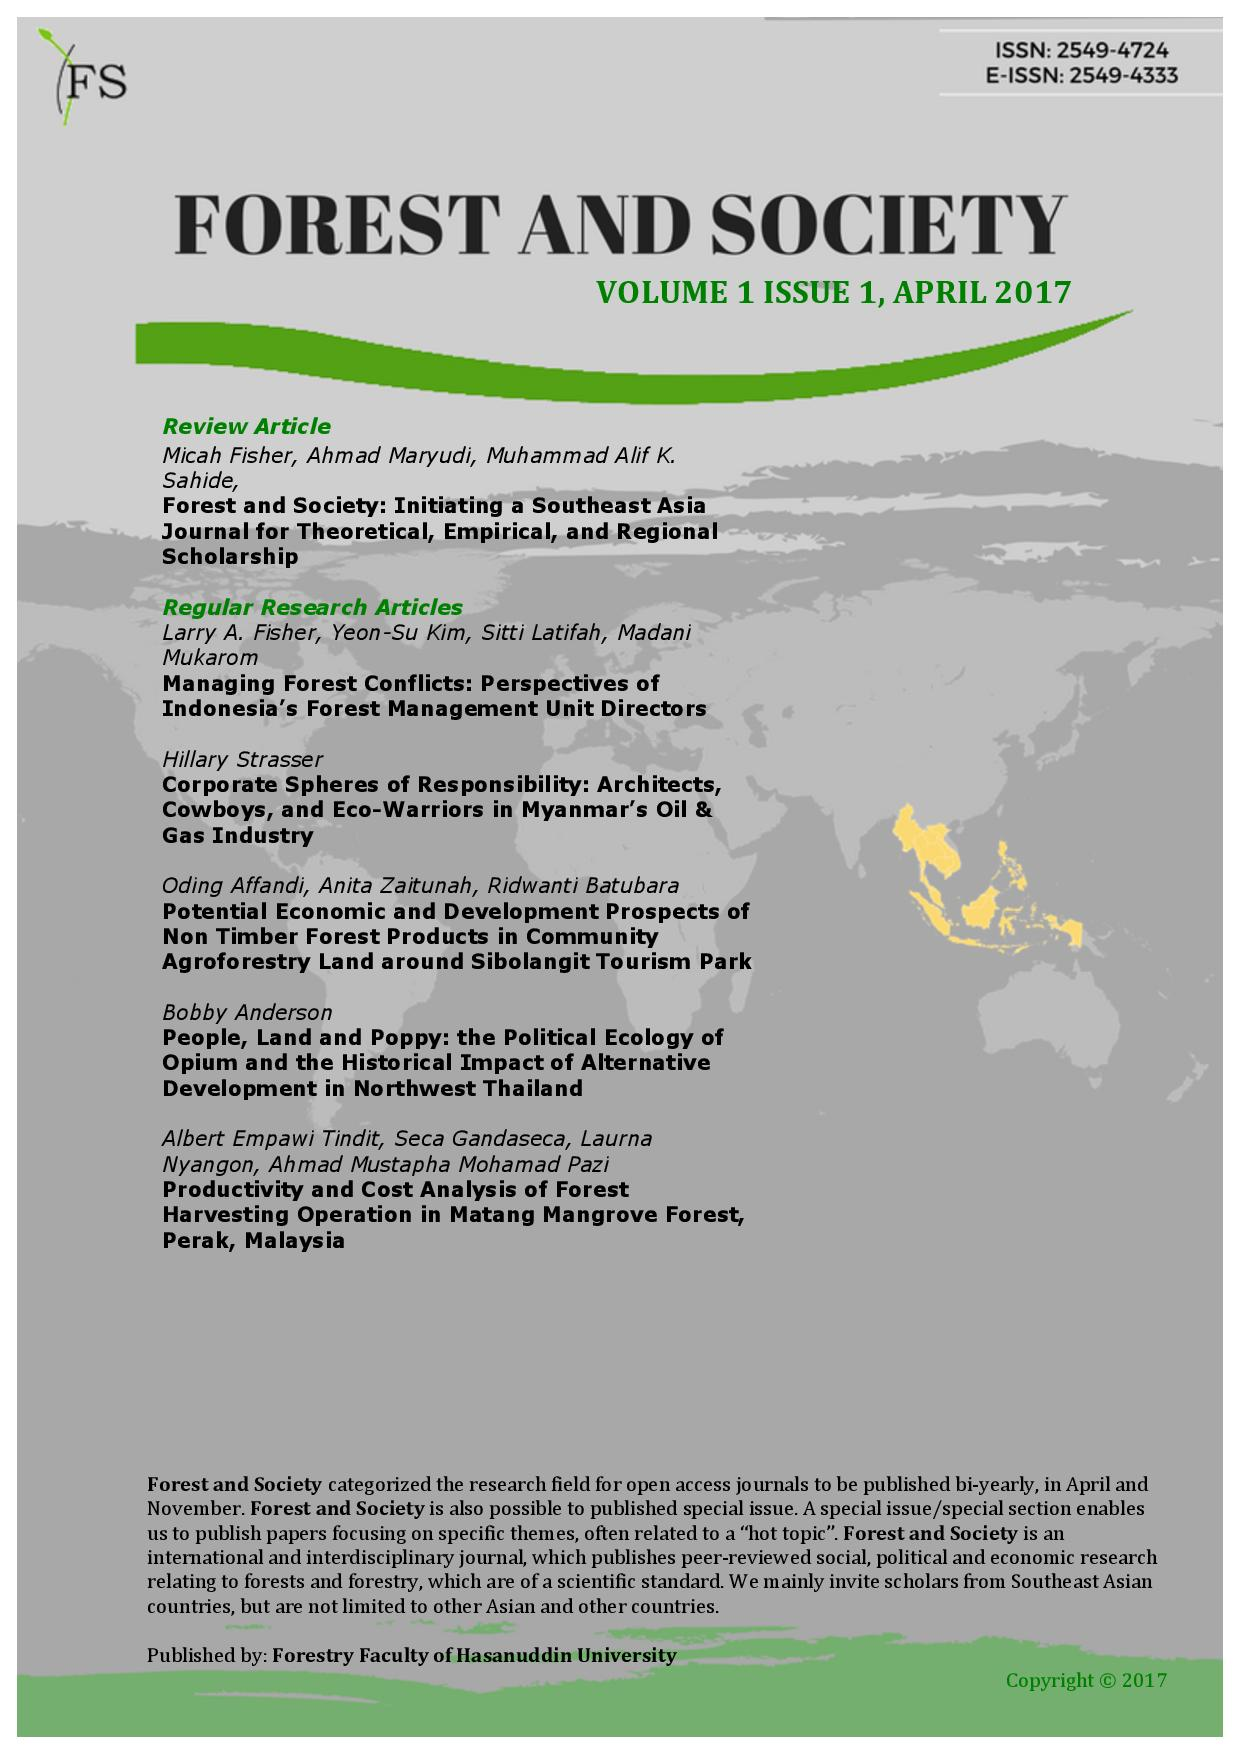 Social Forestry - why and for whom? A comparison of policies in Vietnam and Indonesia